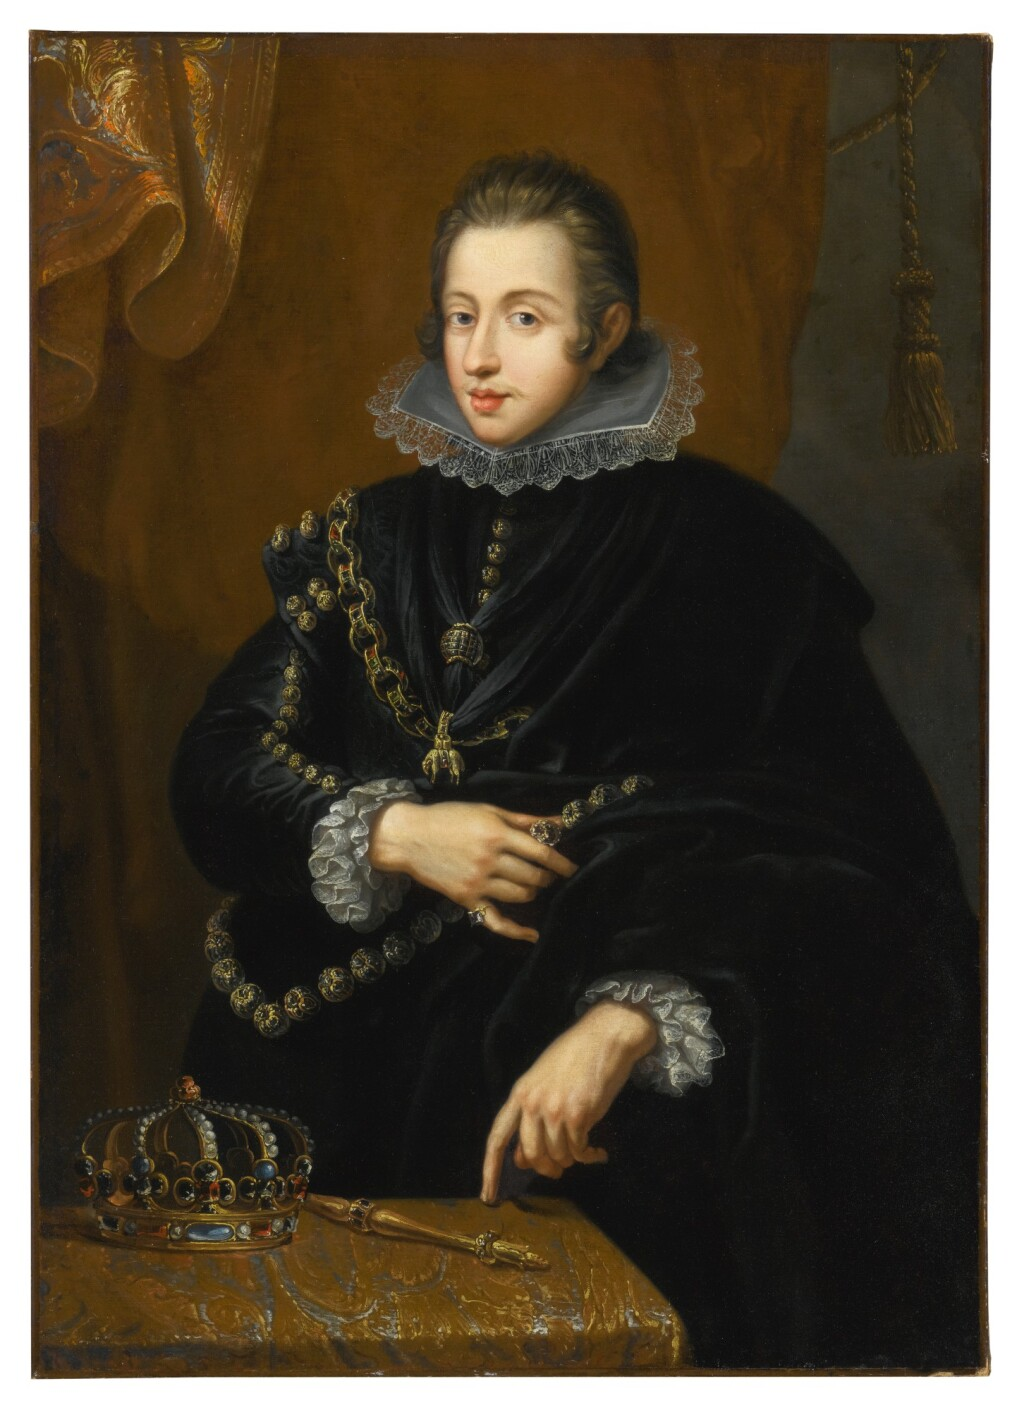 FLEMISH SCHOOL, 17TH CENTURY   PORTRAIT OF KING PHILIP IV OF SPAIN, HALF LENGTH, DRESSED IN BLACK ROBES WITH A GOLILLA COLLAR AND STANDING BEFORE A TABLE WITH A CROWN AND SCEPTRE